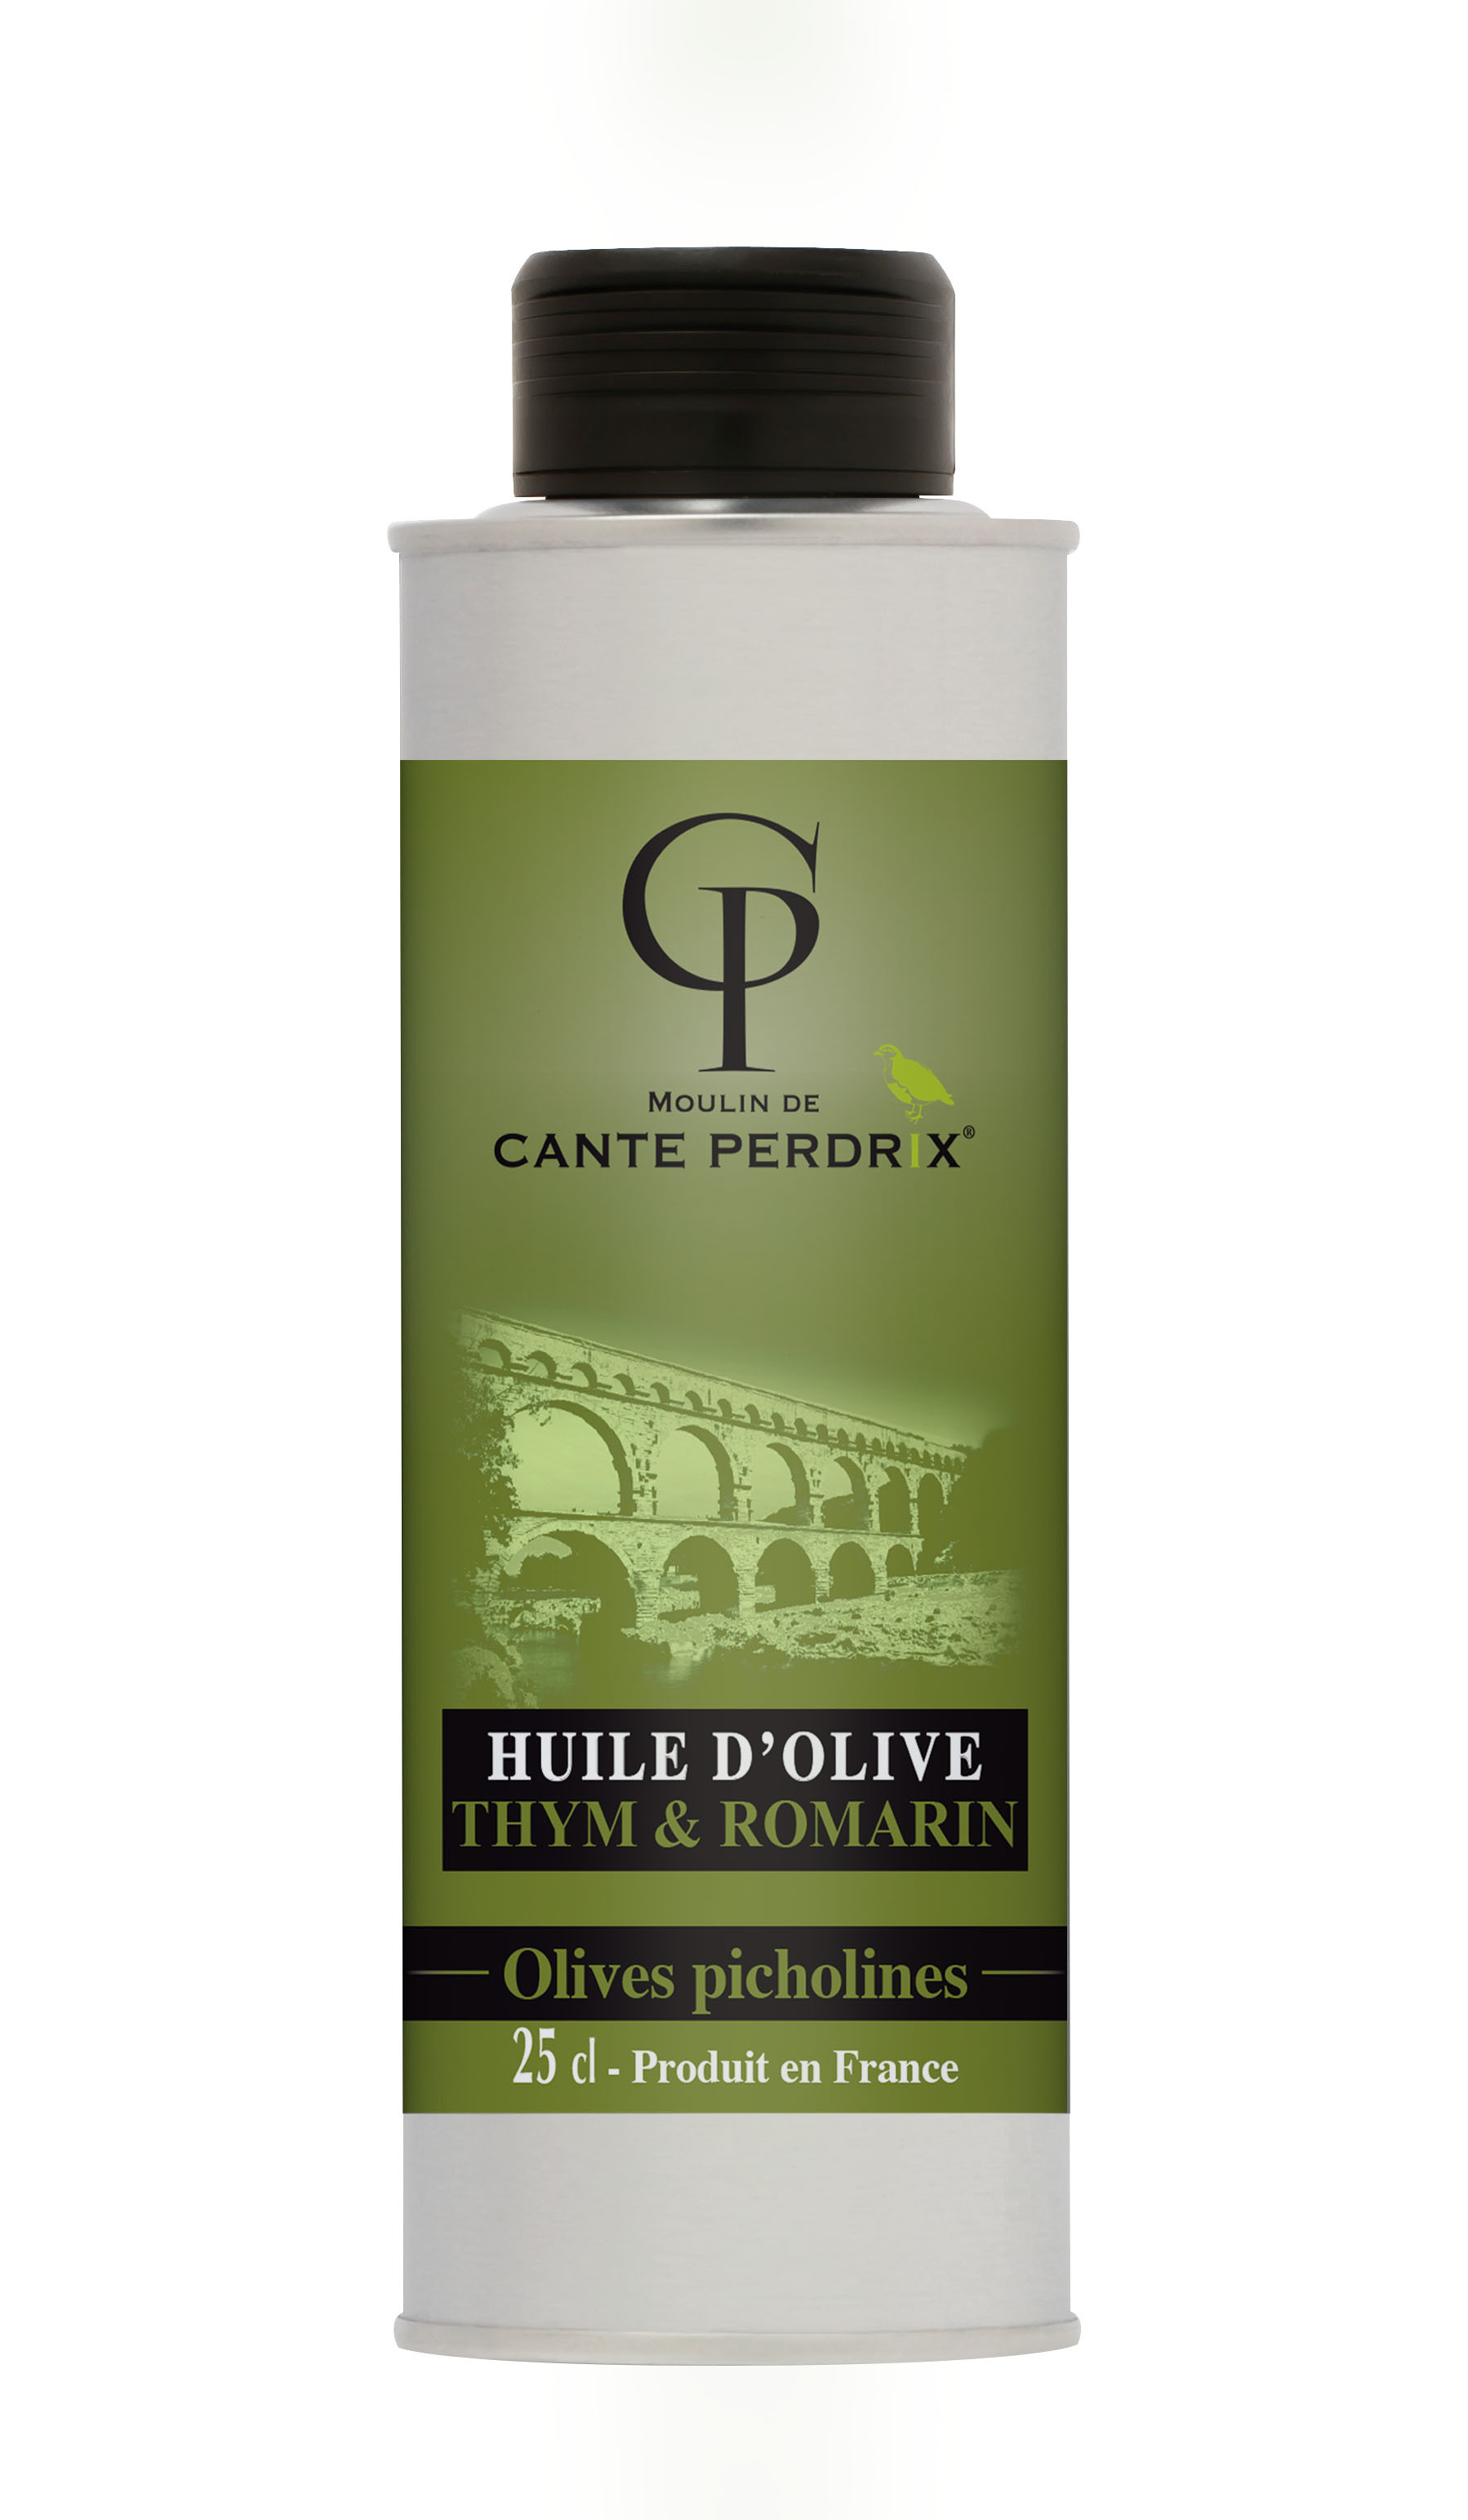 Huile d'olive vierge Thym et Romarin 25 cl